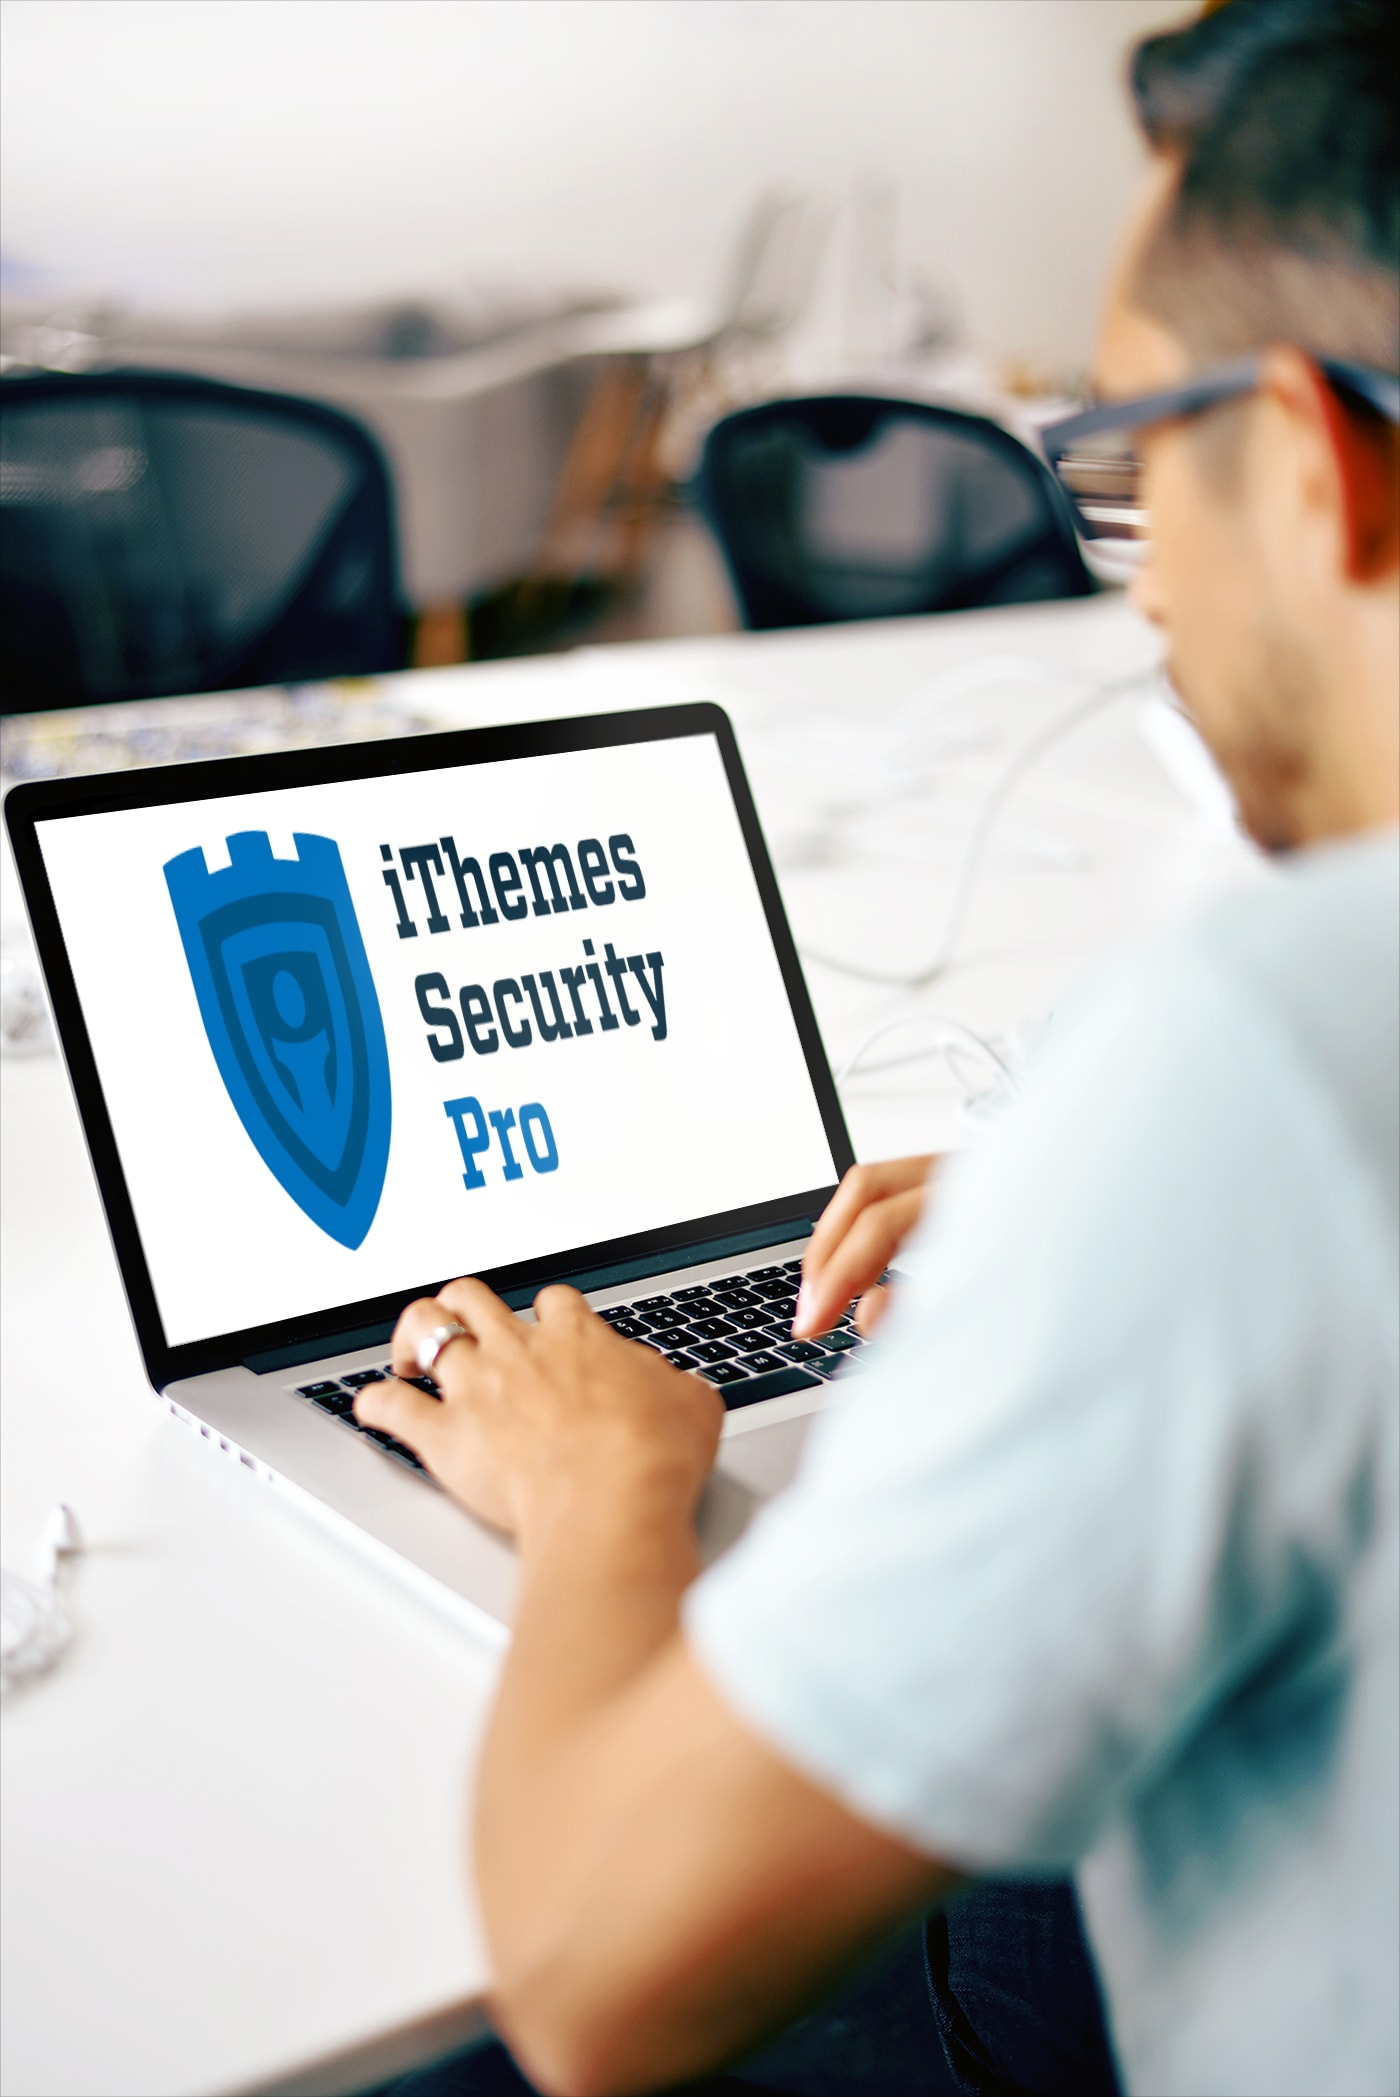 Webp.net compress image 12 - Top 5 Recommend Security Plugins for Website [Updated 2021]